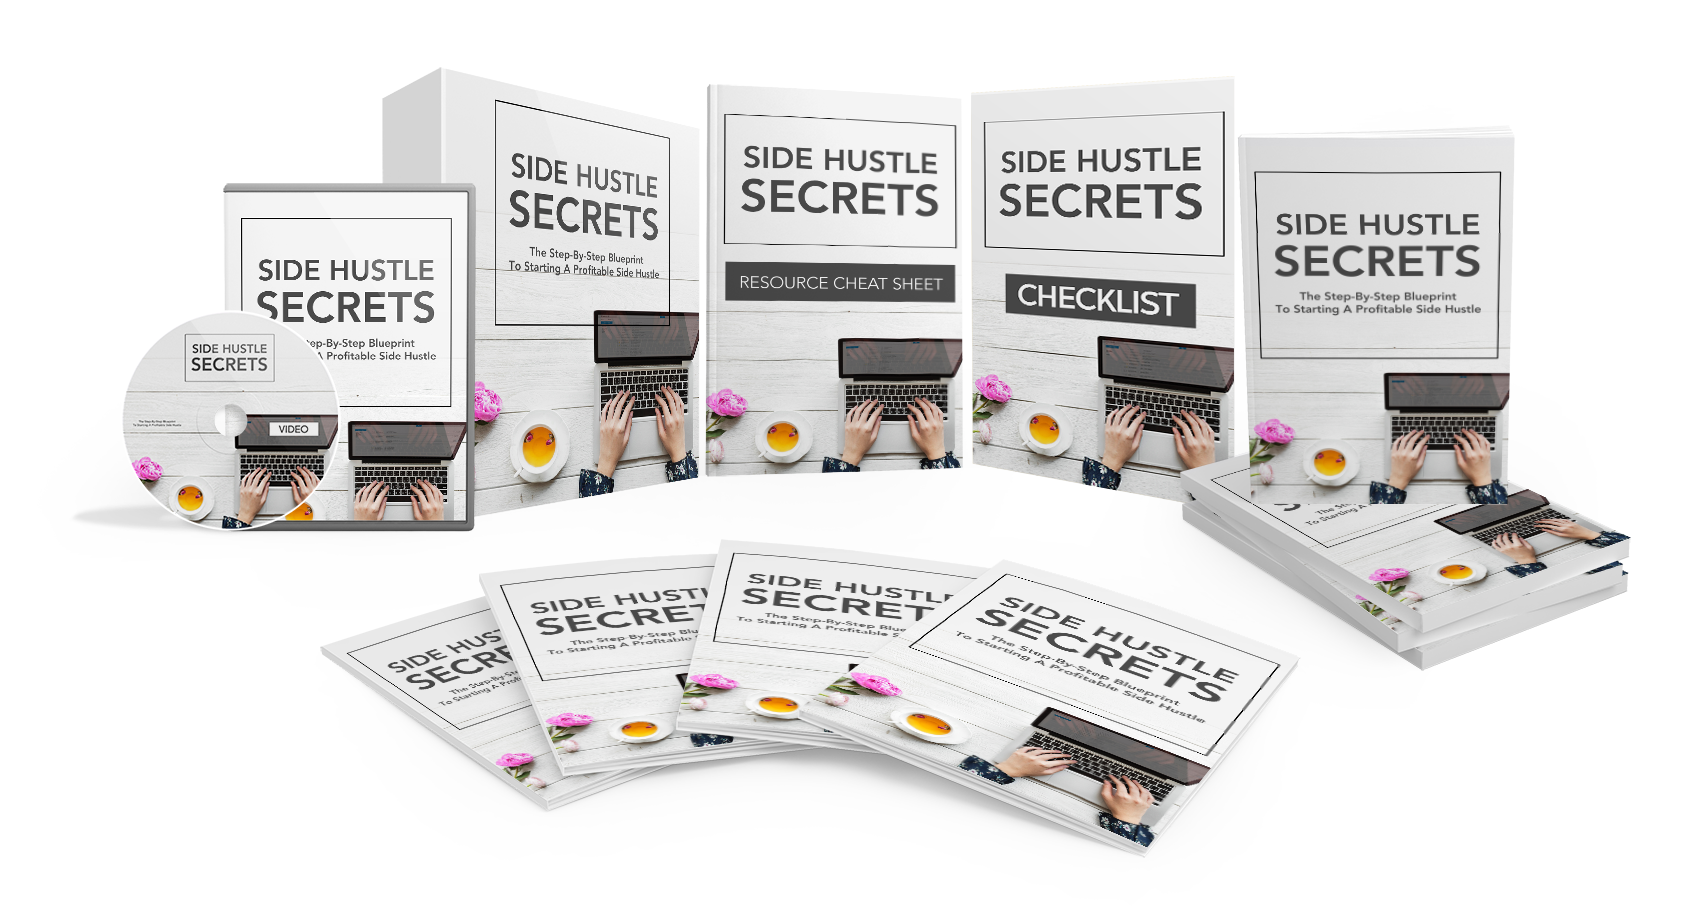 Side Hustle Secrets – Step-by-Step Guide to Start a Profitable Side Hustle and Live the Life You Always Wanted